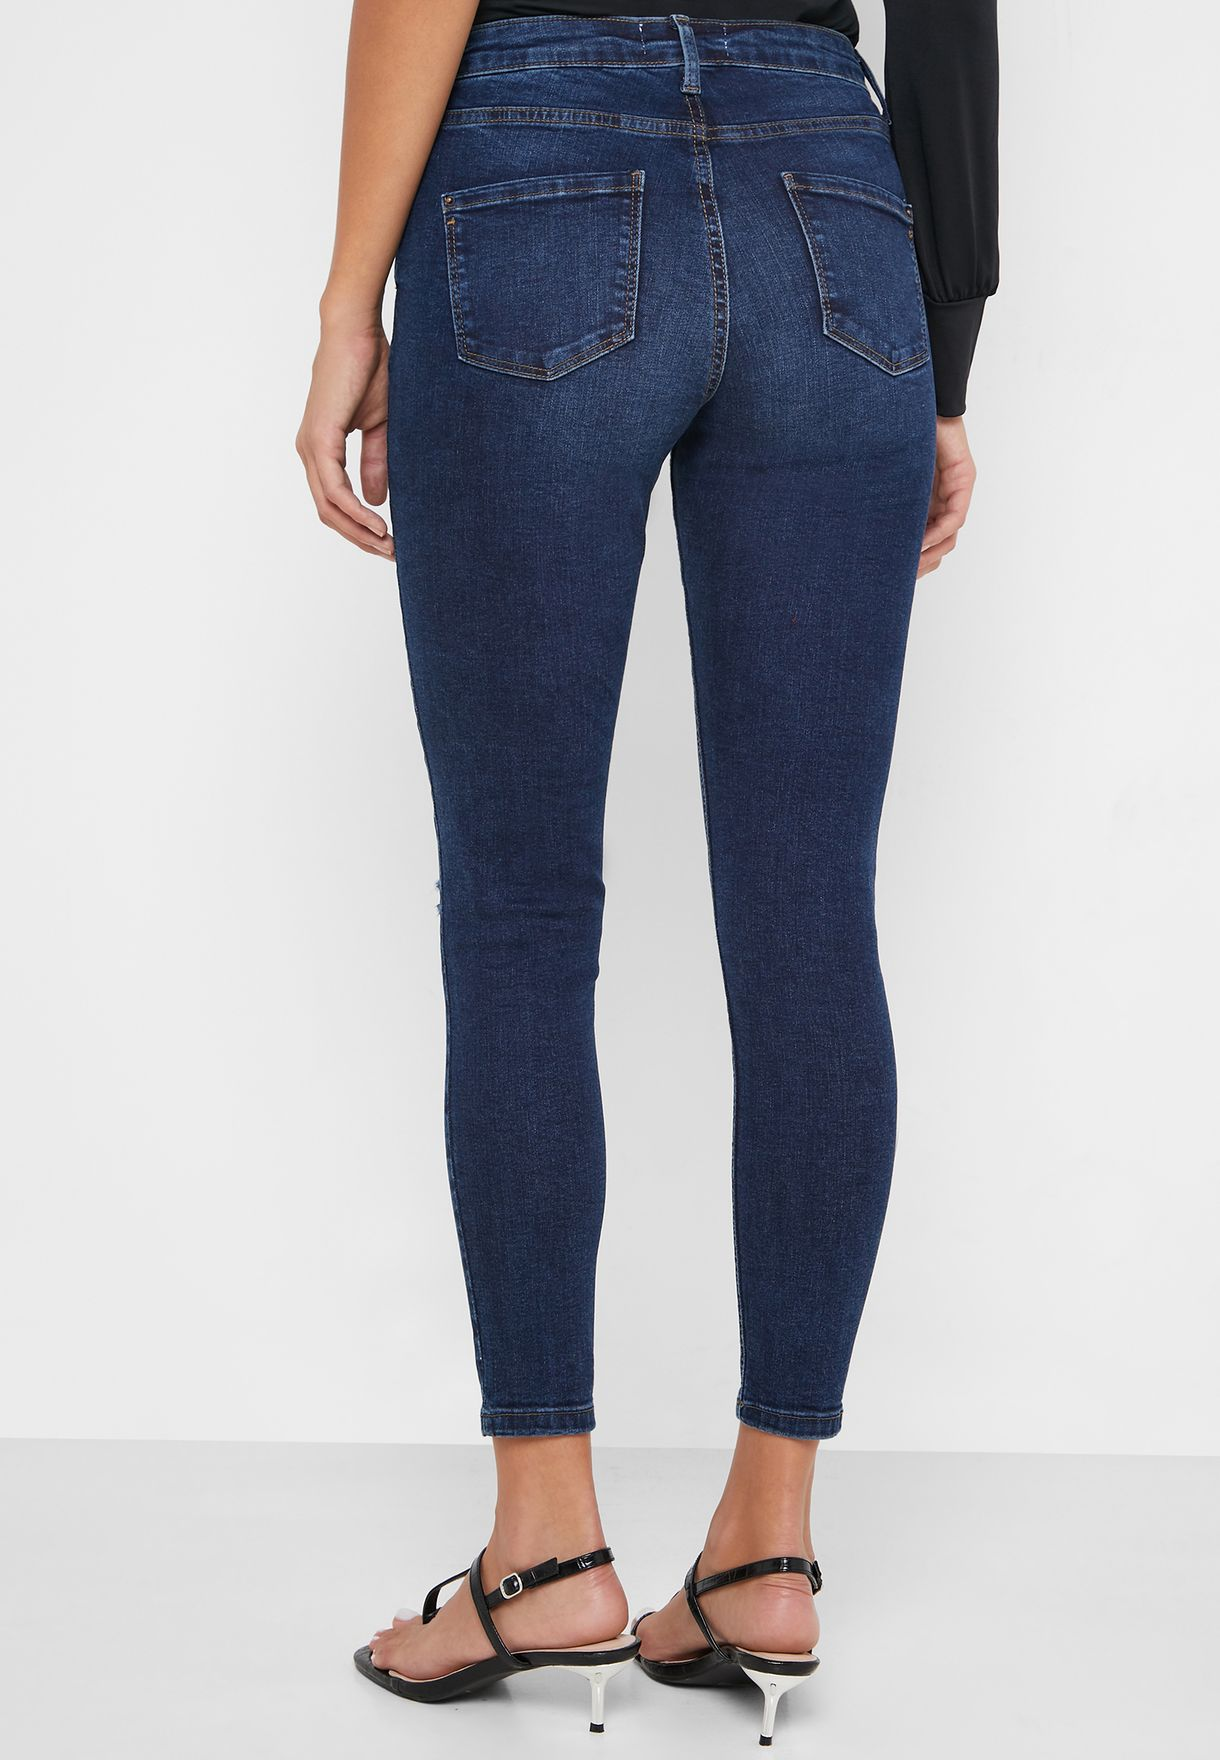 Darcy Ripped Regular Length Jeans